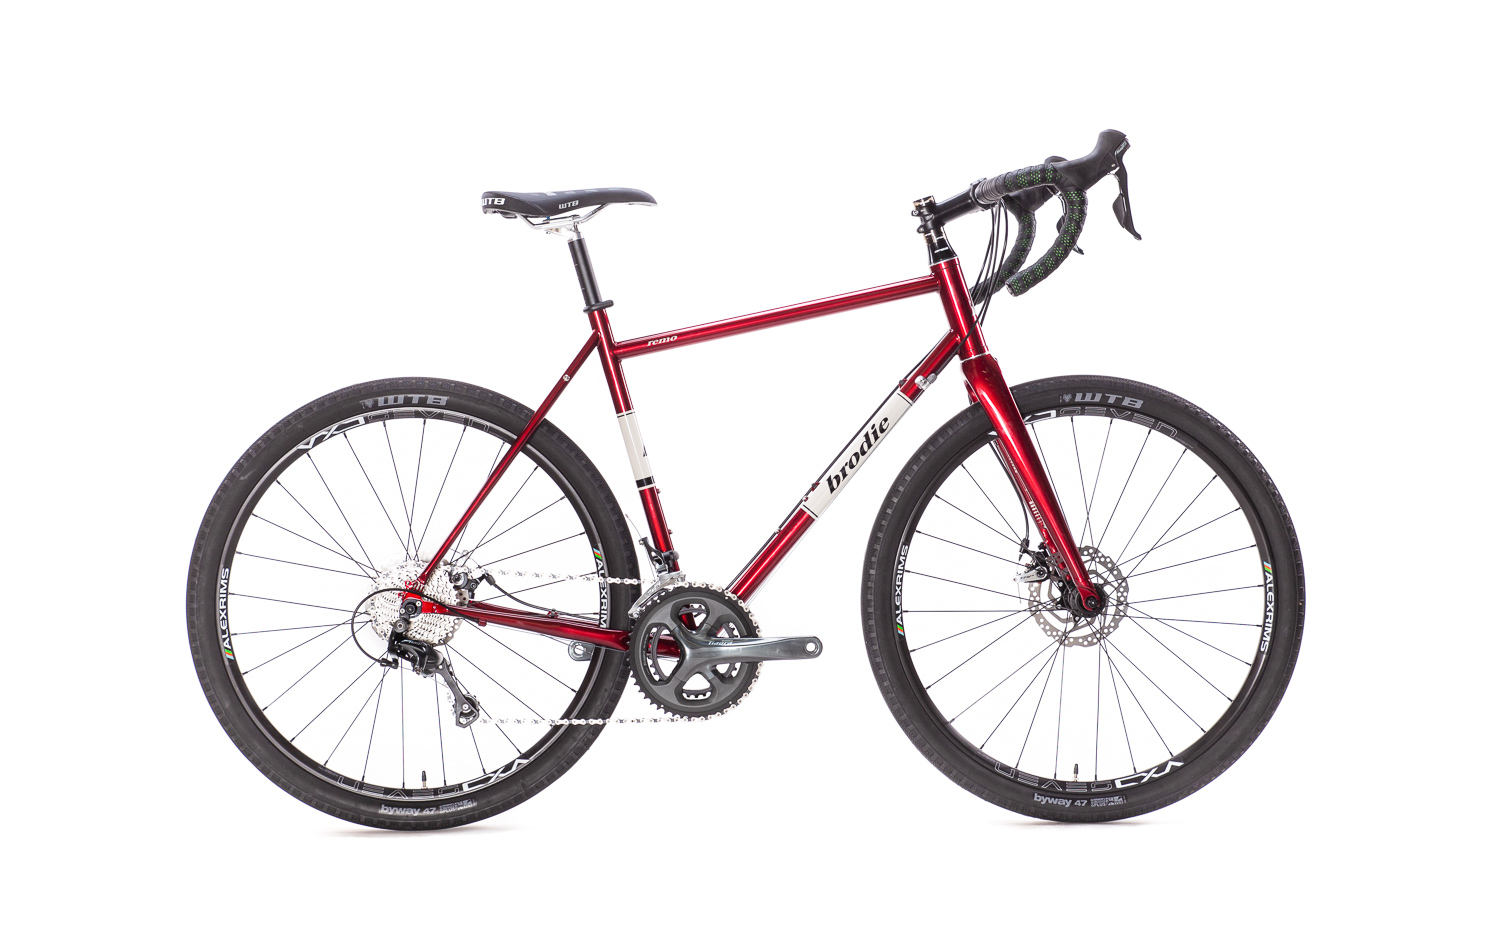 Have a look at the Remo in the Road Plus Gravel Series - $2099